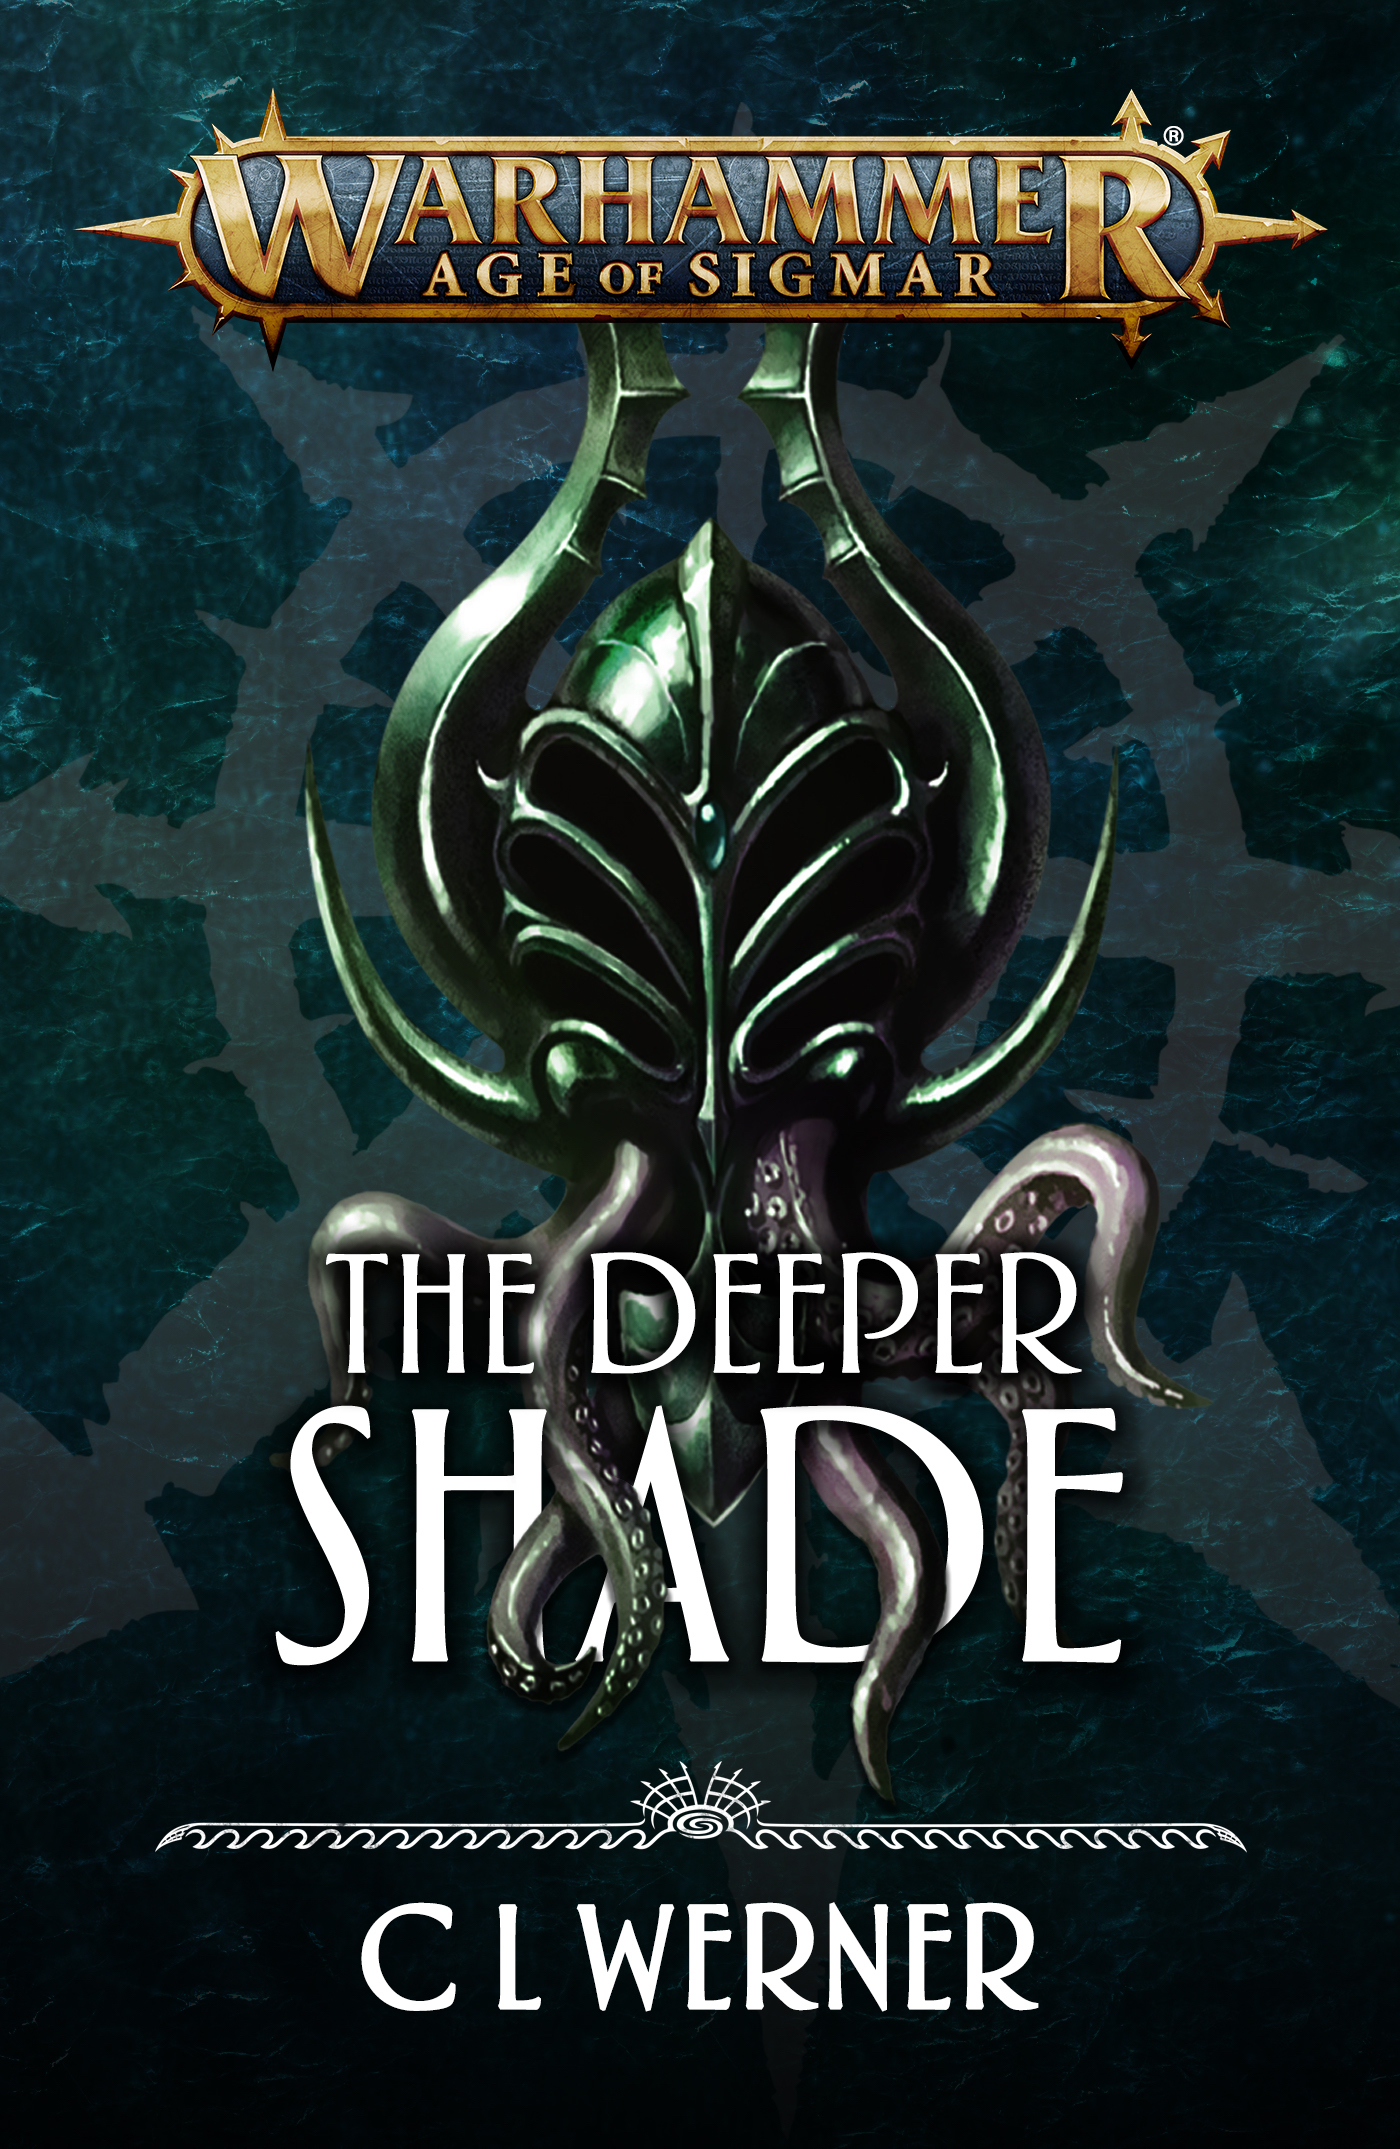 A Deeper Shade by C.L. Werner